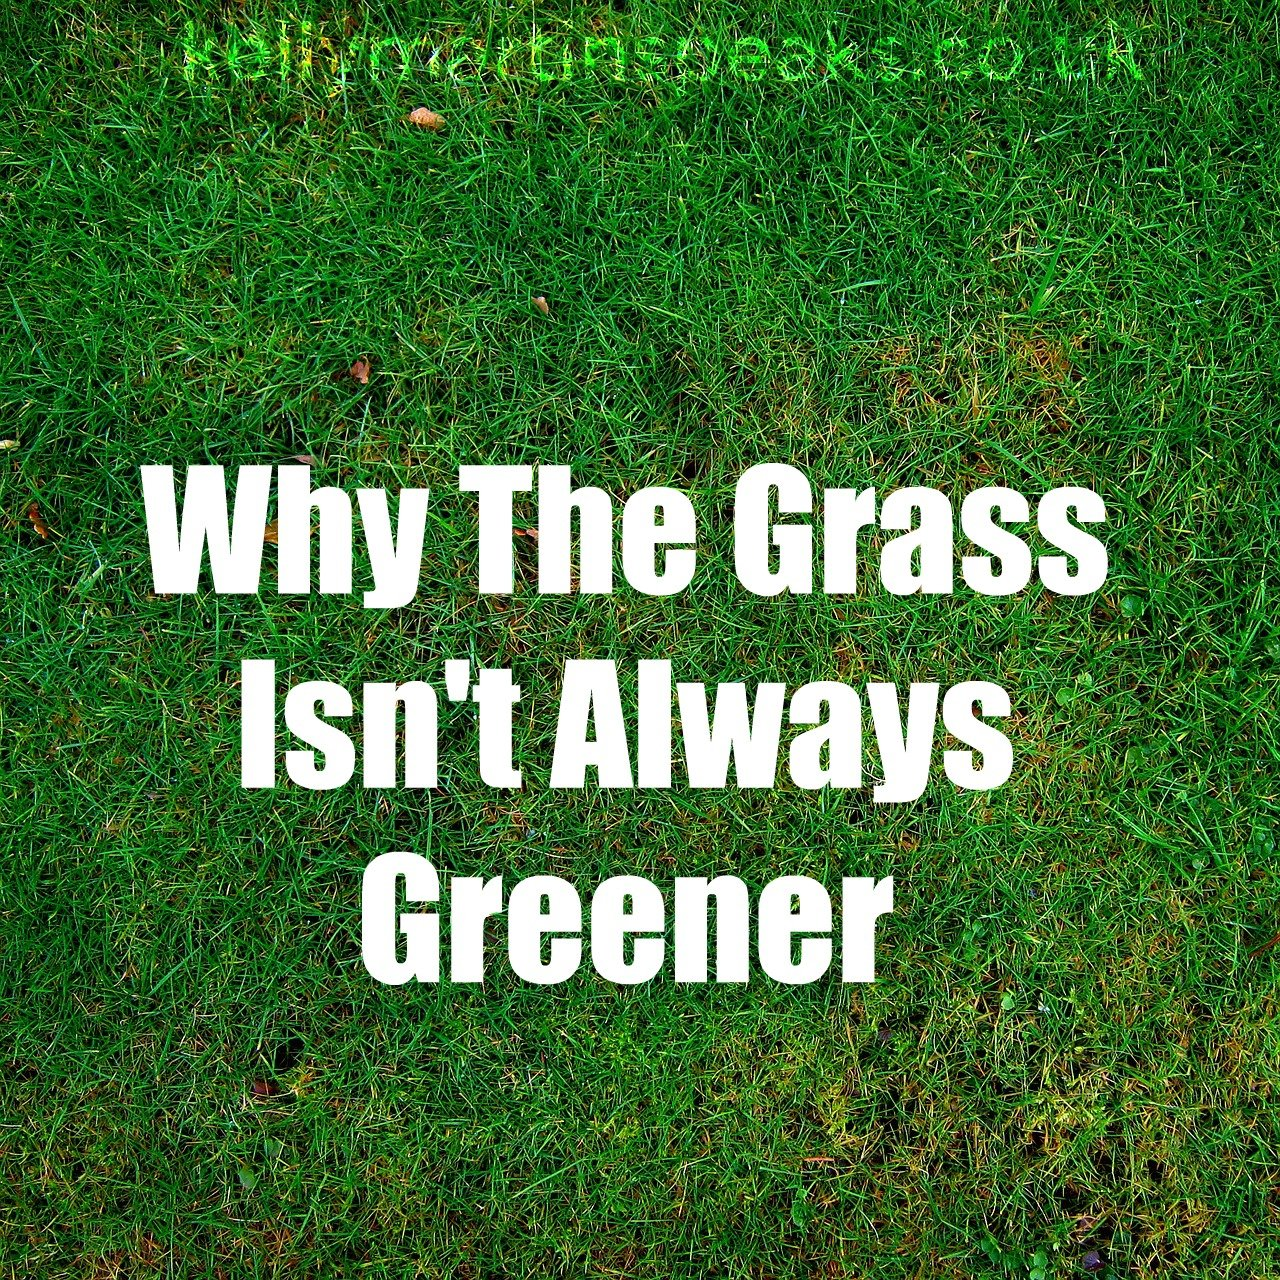 grass isnt always greener